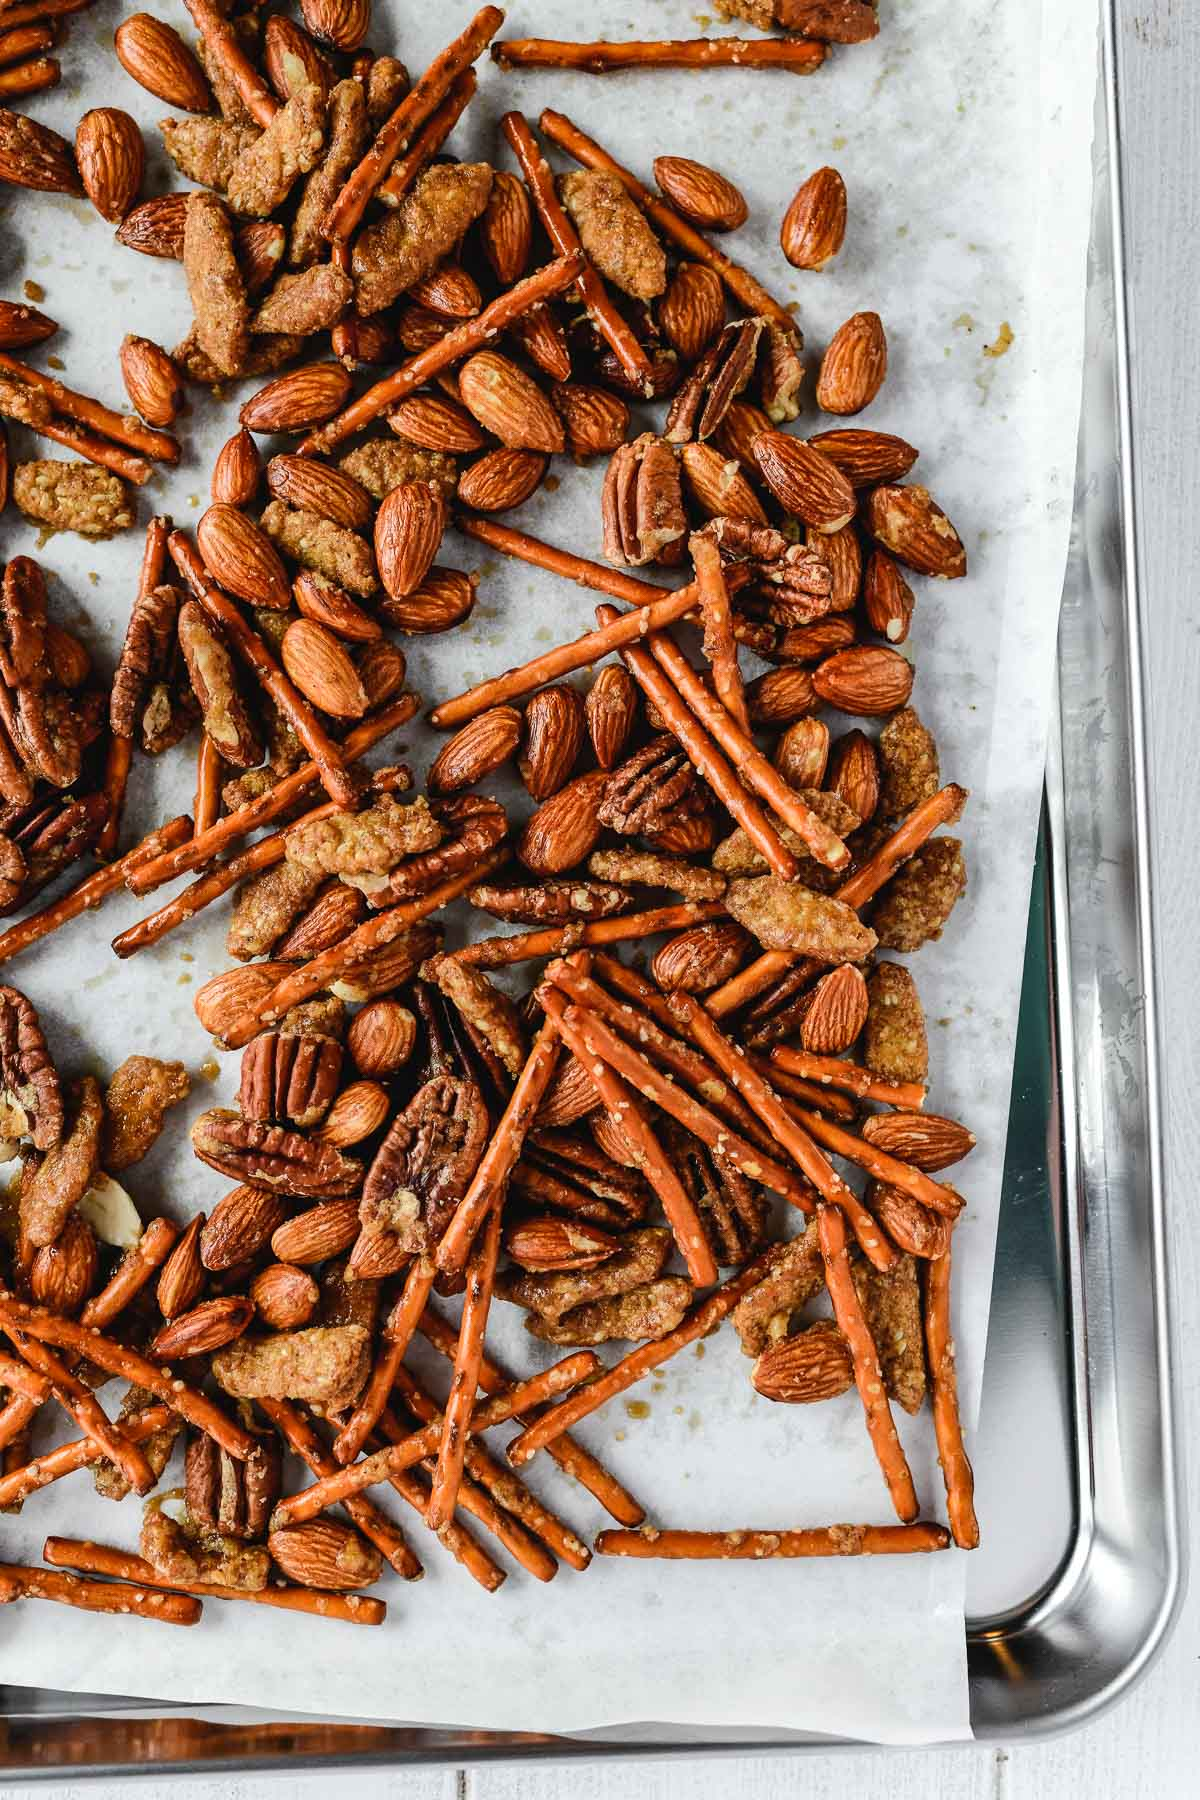 baking a sweet salty and spicy snack mix on a baking sheet